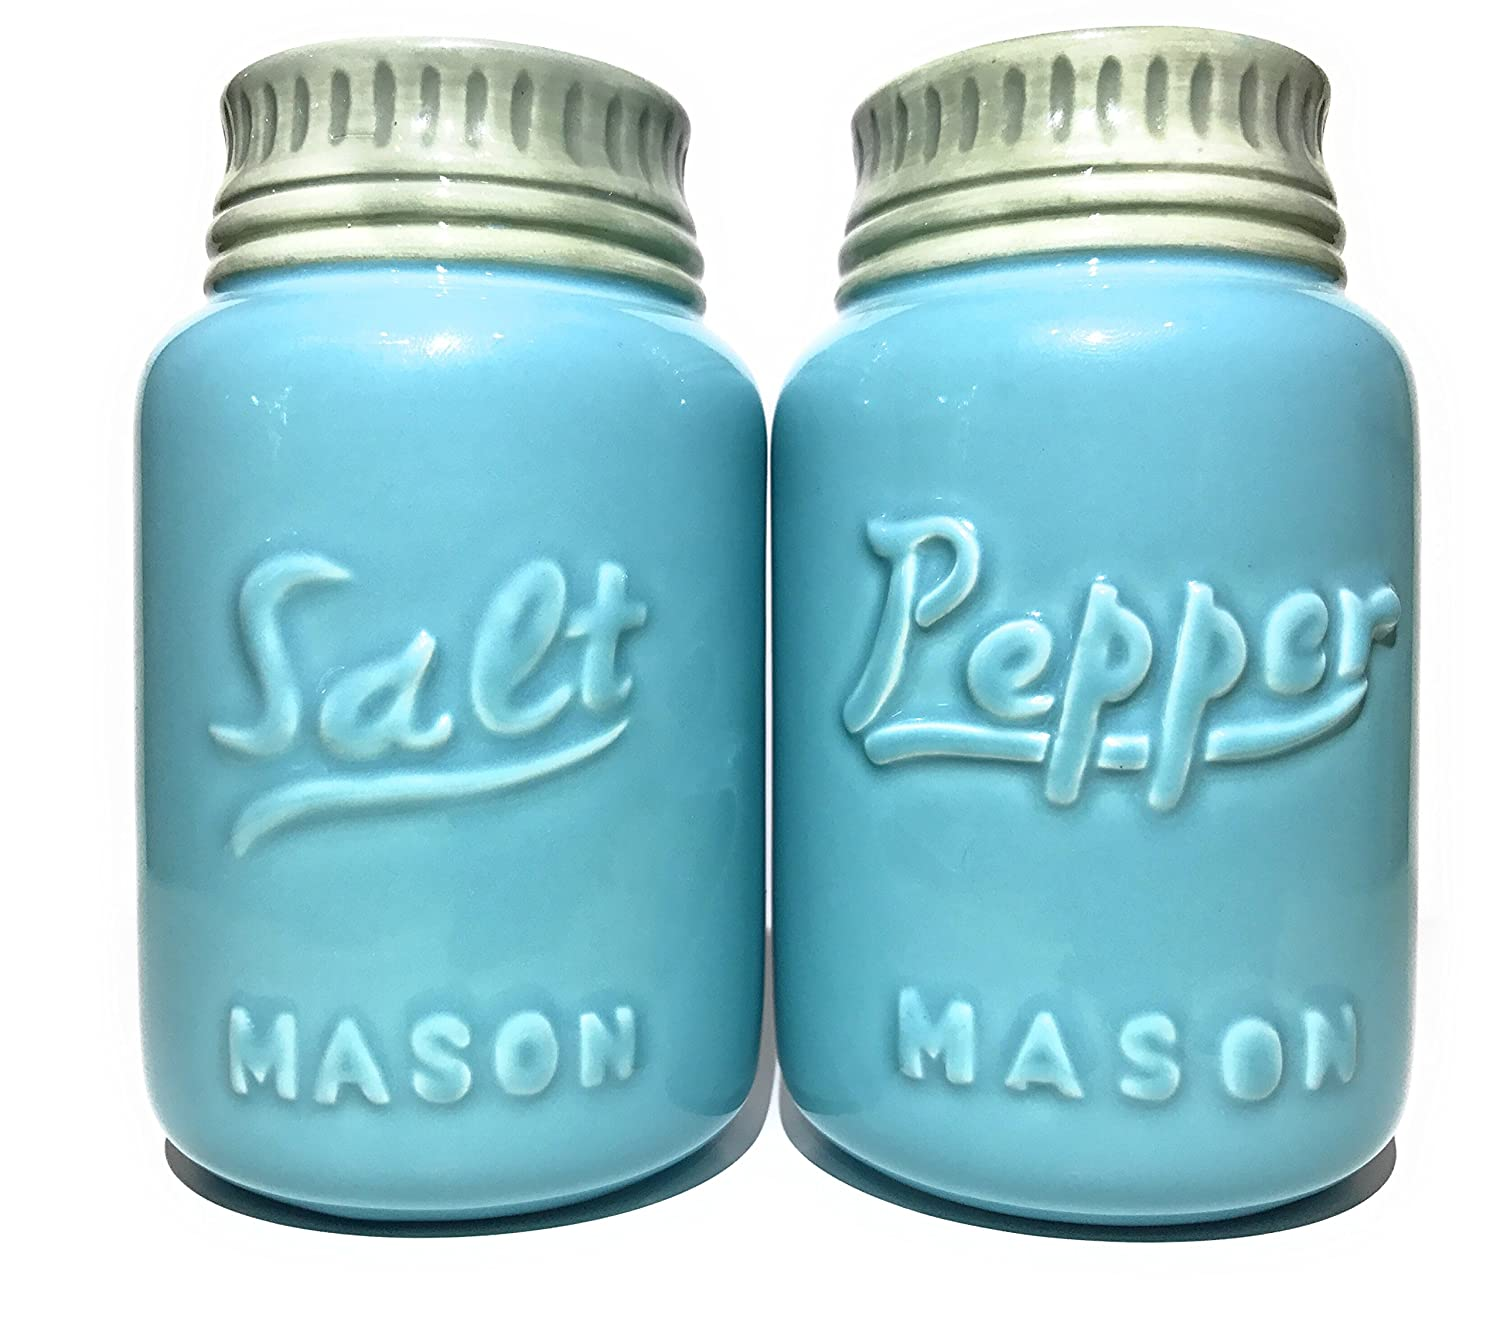 Rustic Ceramic Mason Jar Salt and Pepper Shaker Set - Vintage Style Green - Retro Antique Farmhouse Decor - Nostalgic Country Ranch Home Kitchen Decoration for Coffee Shop Cafe Cabin Diner Shabby Chic